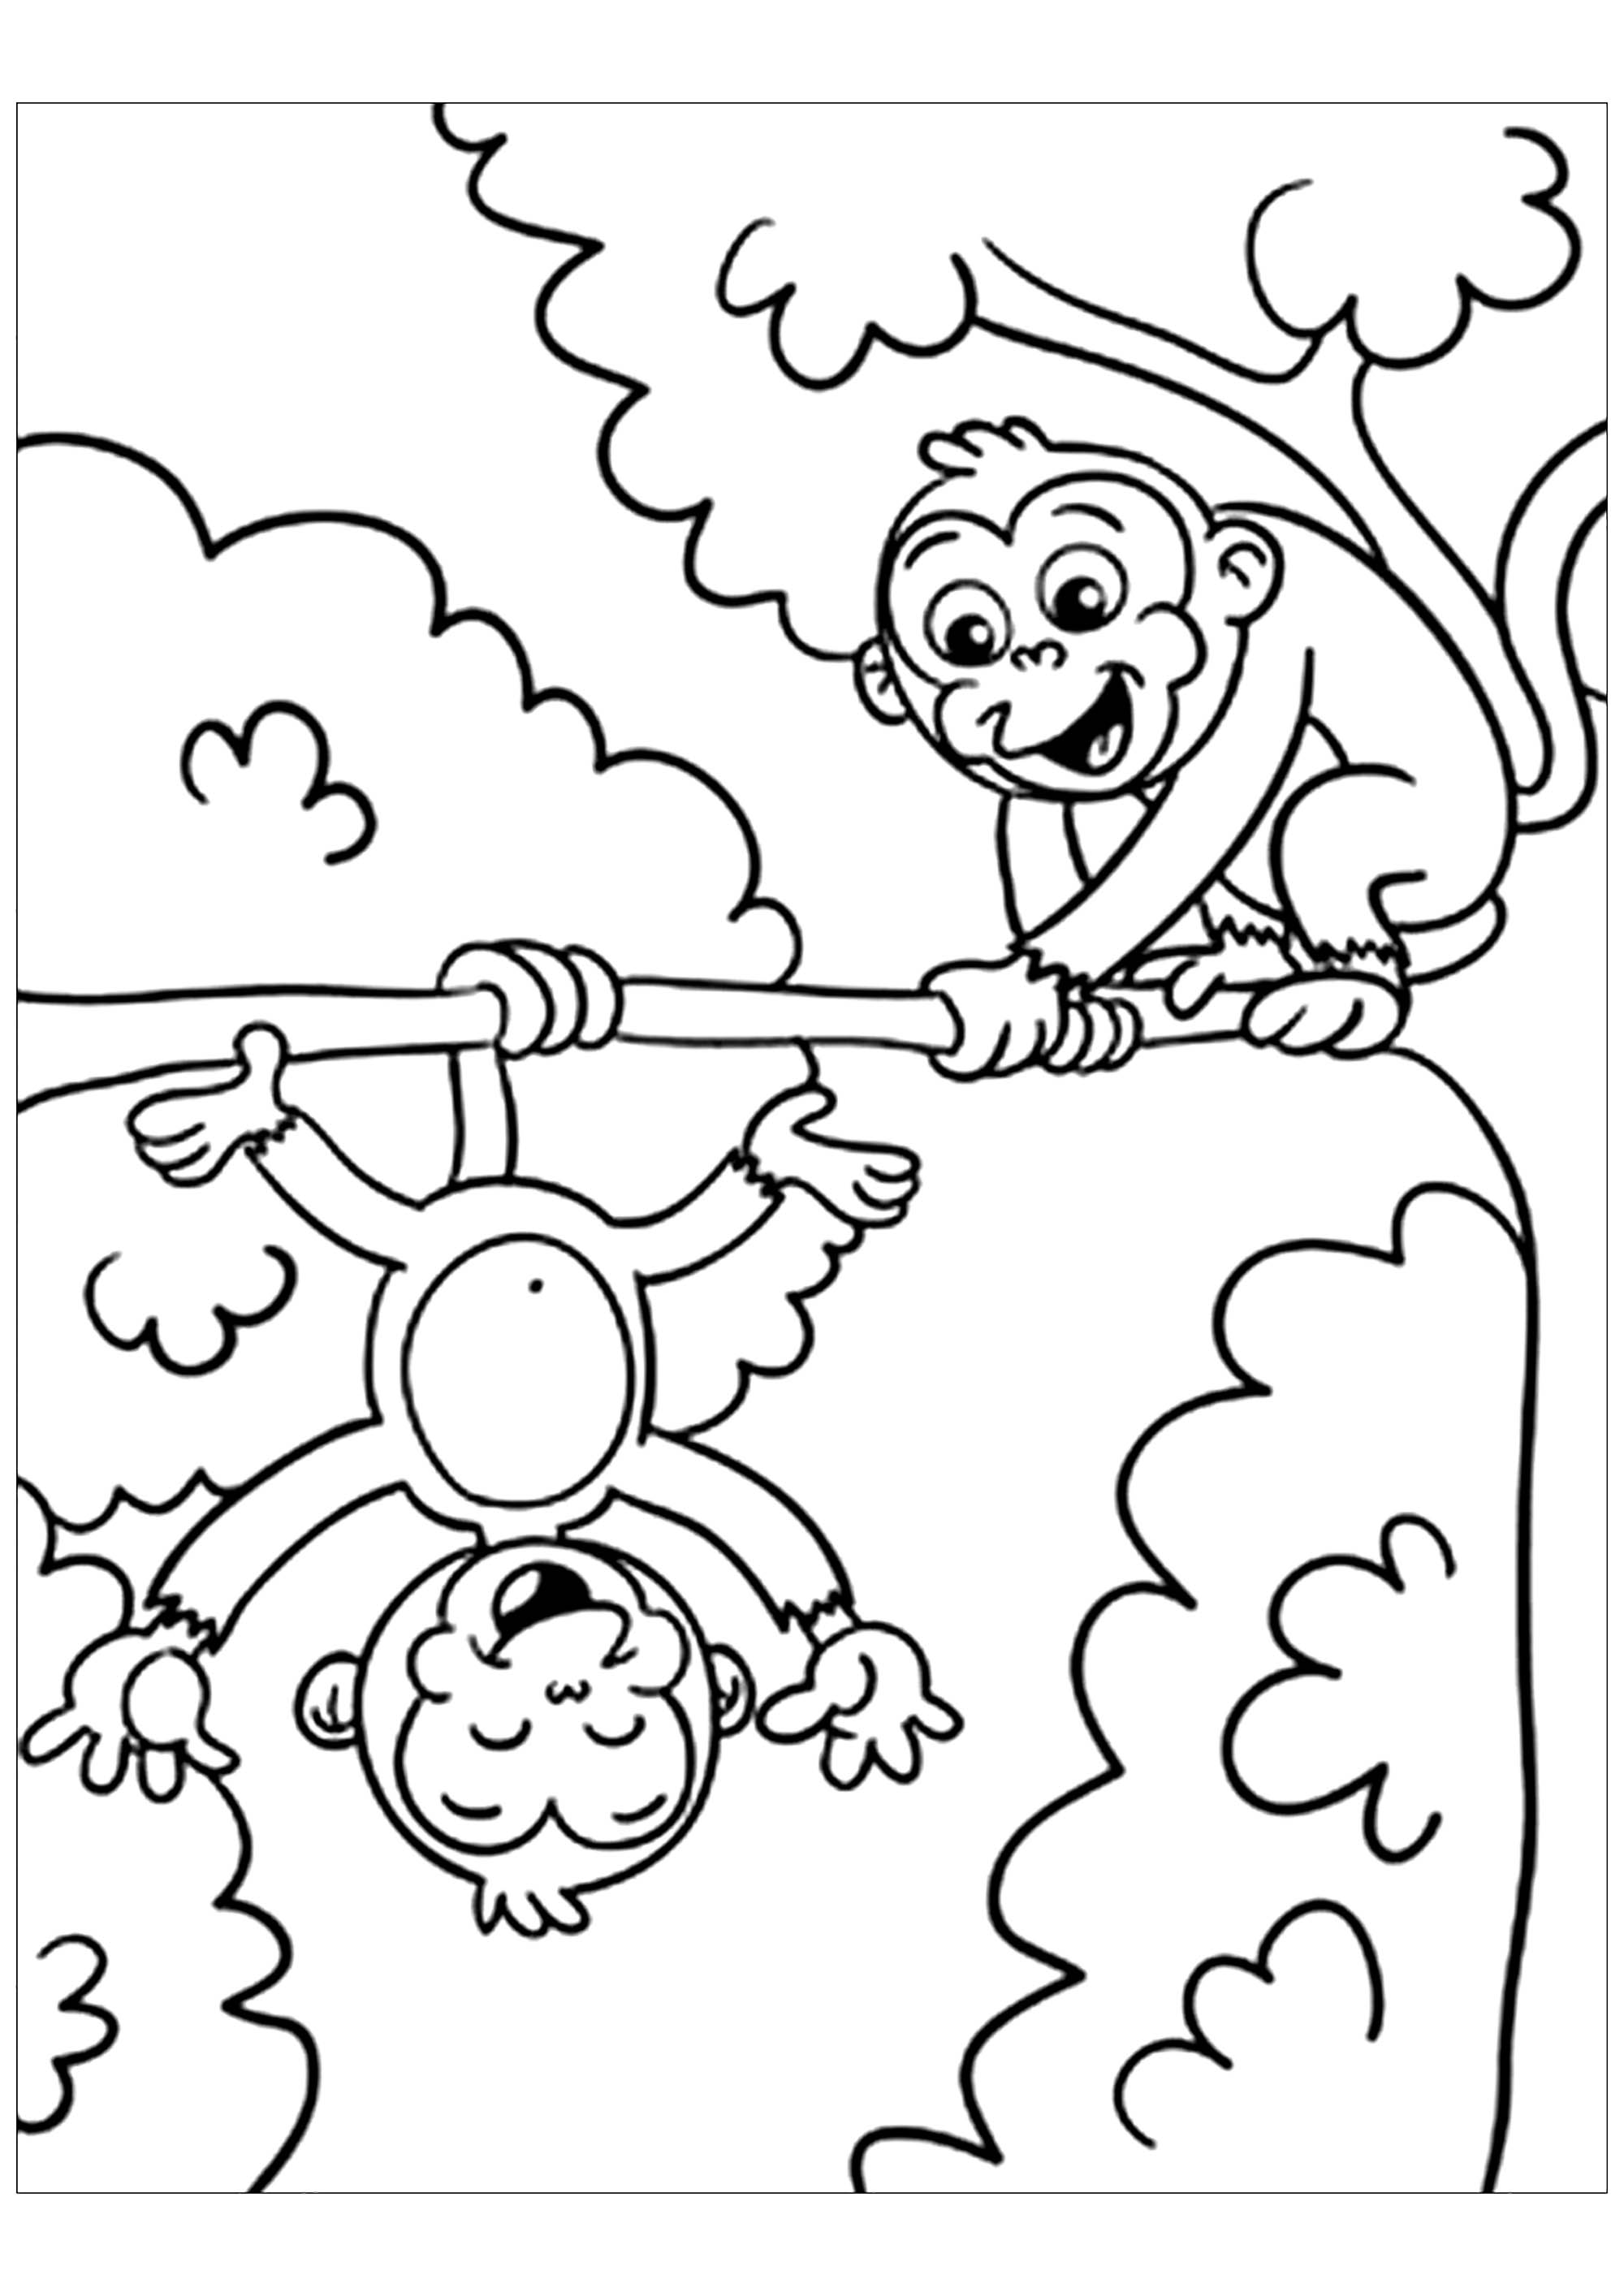 coloring template coloring for kids 30 best coloring pages for kids we need fun for kids coloring coloring template